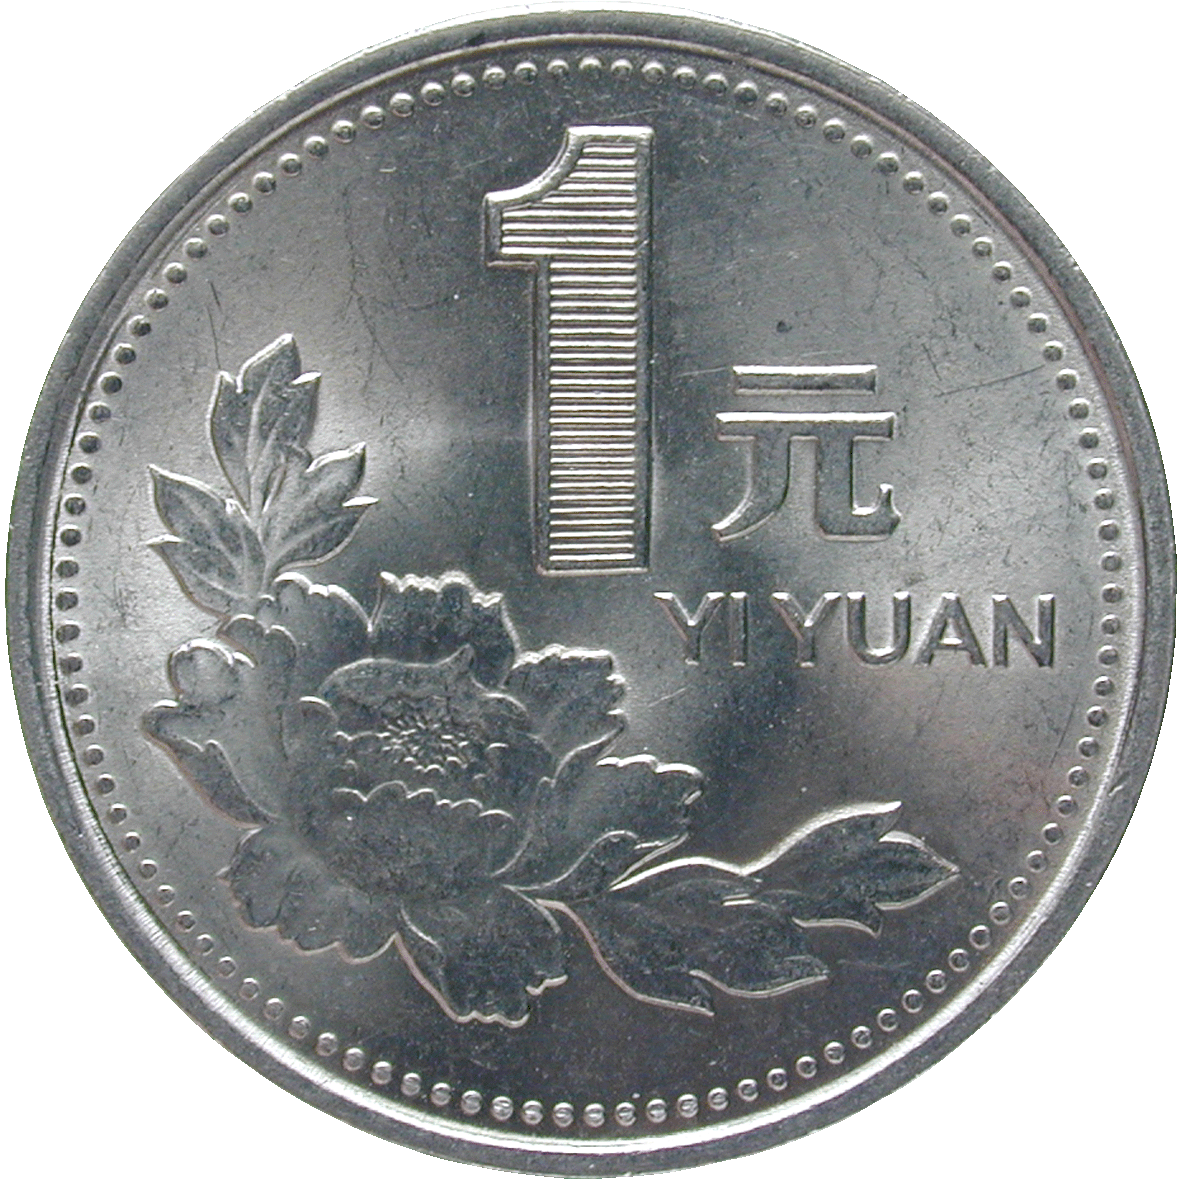 Peoples Republik of China, 1 Yuan 1995 (reverse)